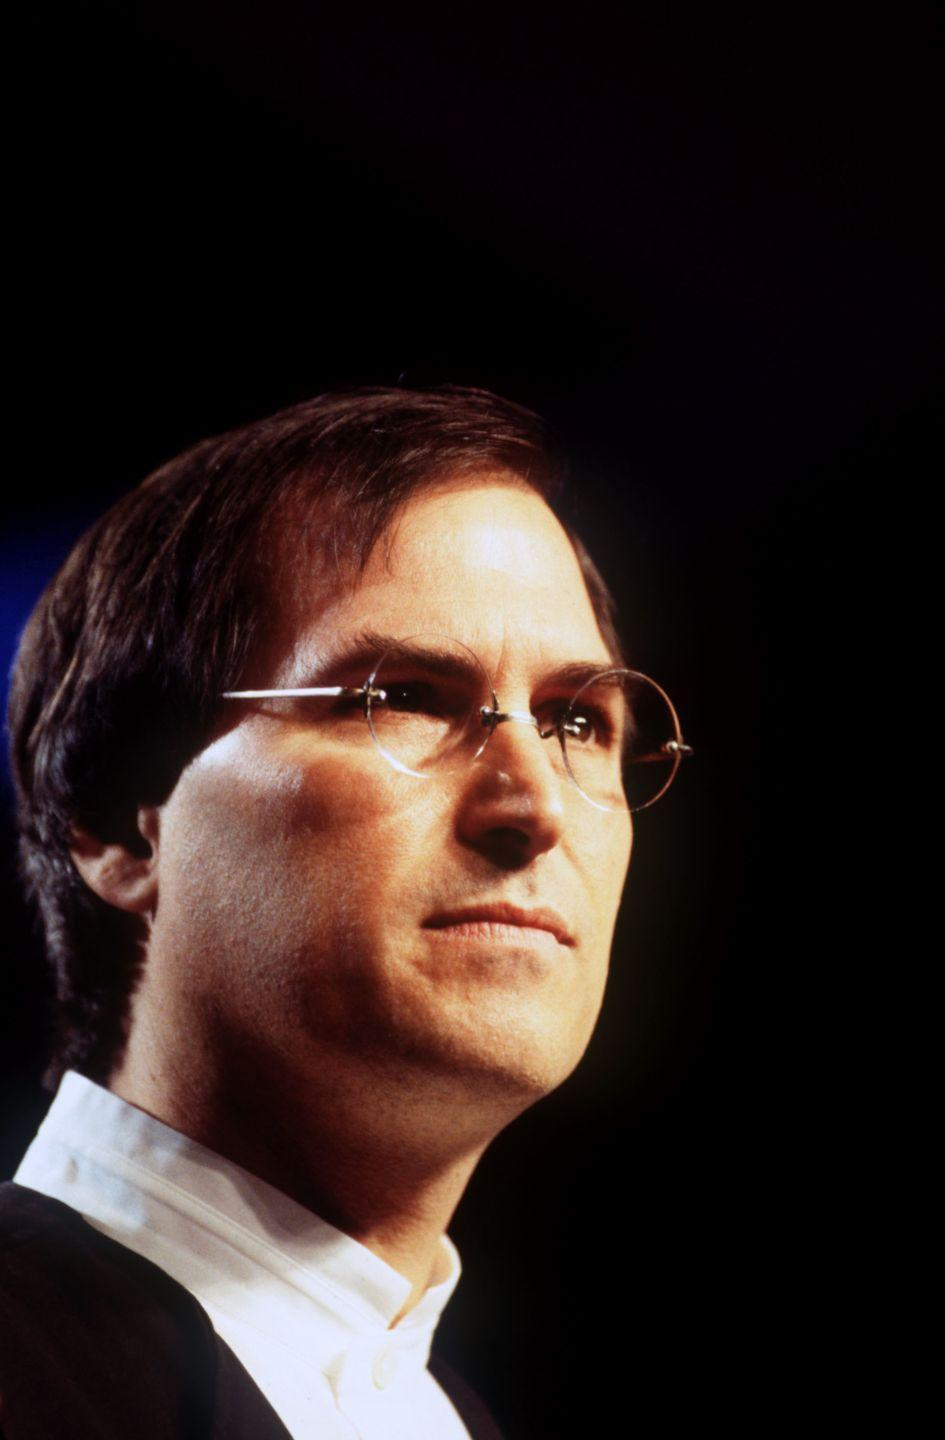 <p>After being fired from Apple in 1985, Steve Job returned in 1997 in what was to become Apple's breakthrough. Acting as CEO, Jobs introduced products like the iPhone, the Macbook and other commonly used items. </p>